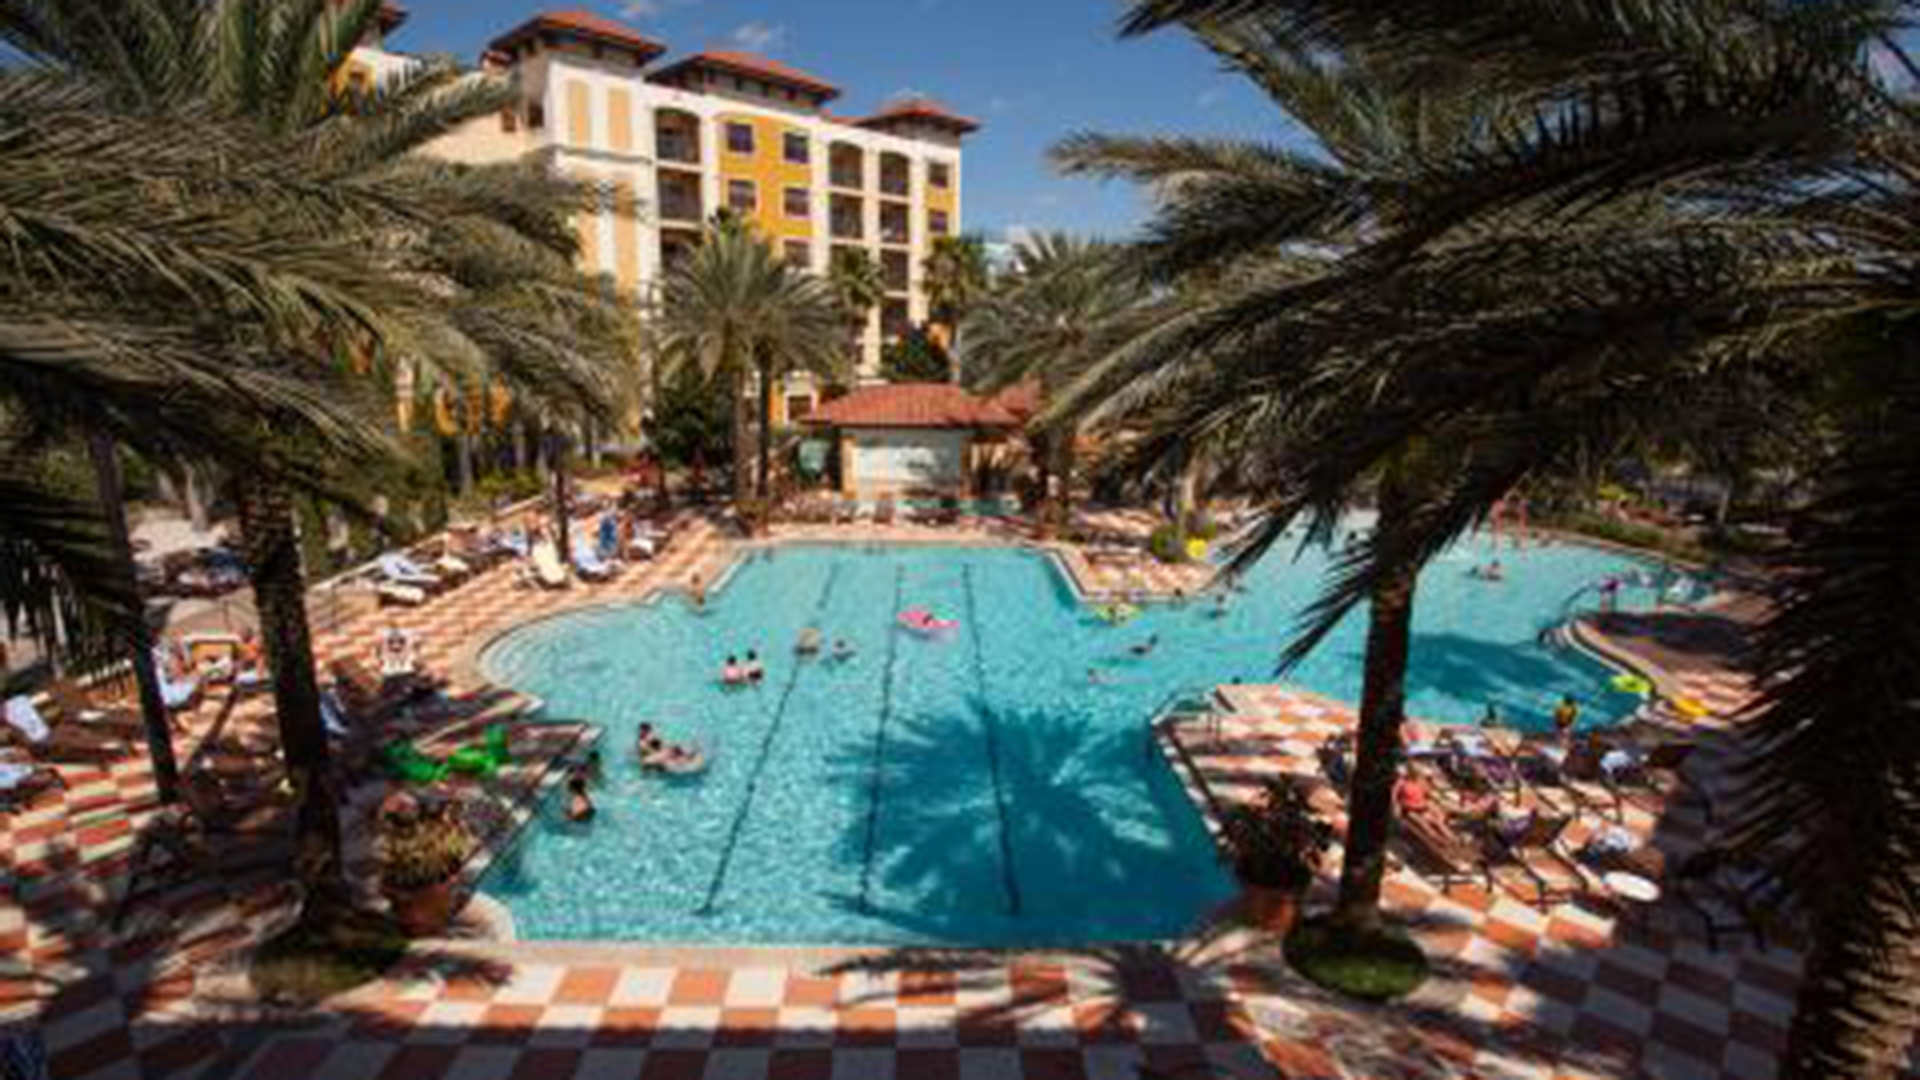 The best family hotels tripadvisor picks top 10 in us and world today com